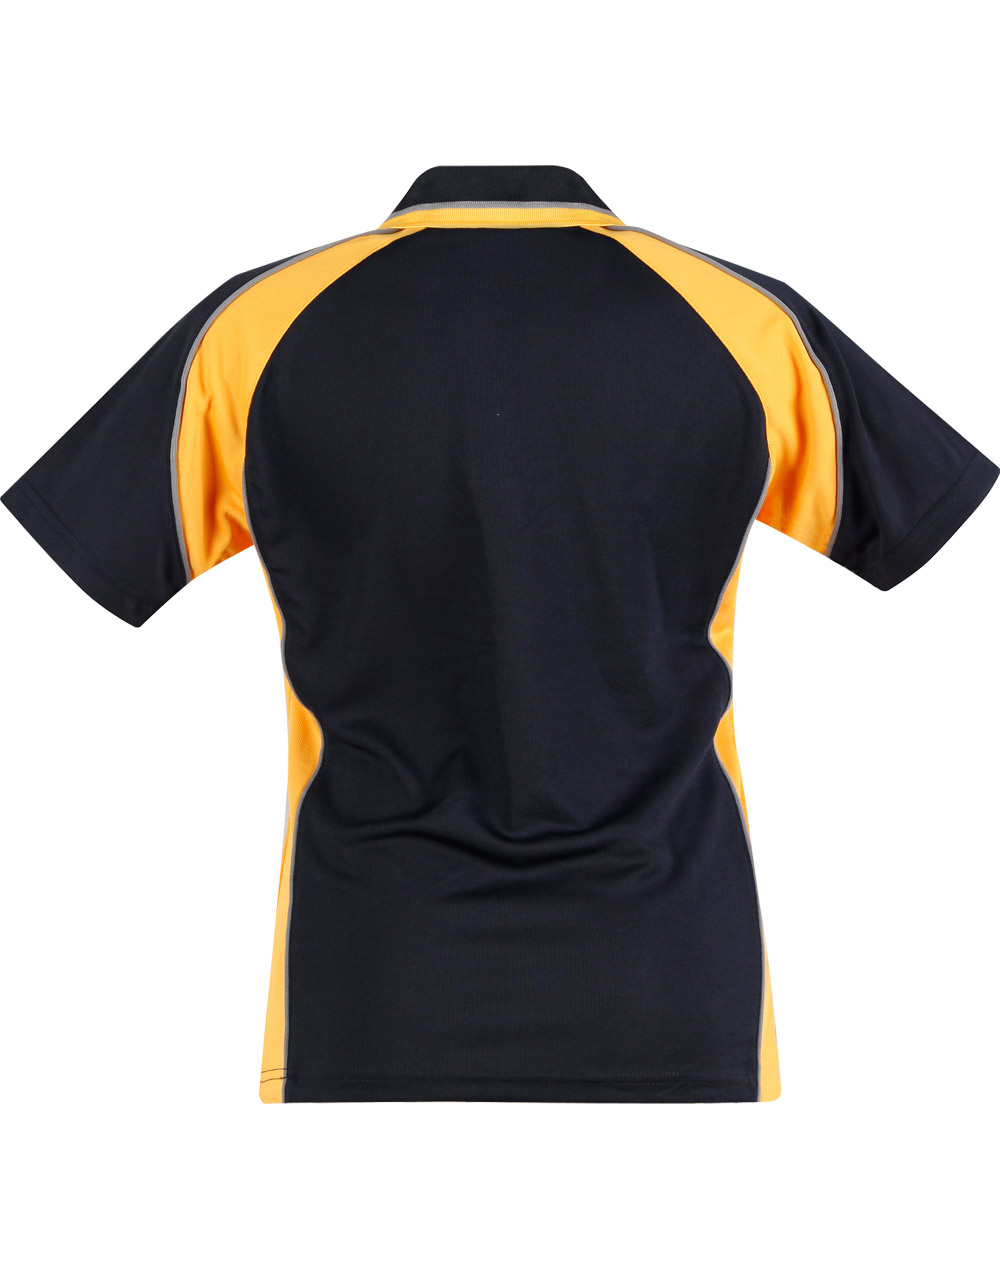 https://s3-ap-southeast-1.amazonaws.com/ws-imgs/POLOSHIRTS/PS50_NavyGold_Back.jpg